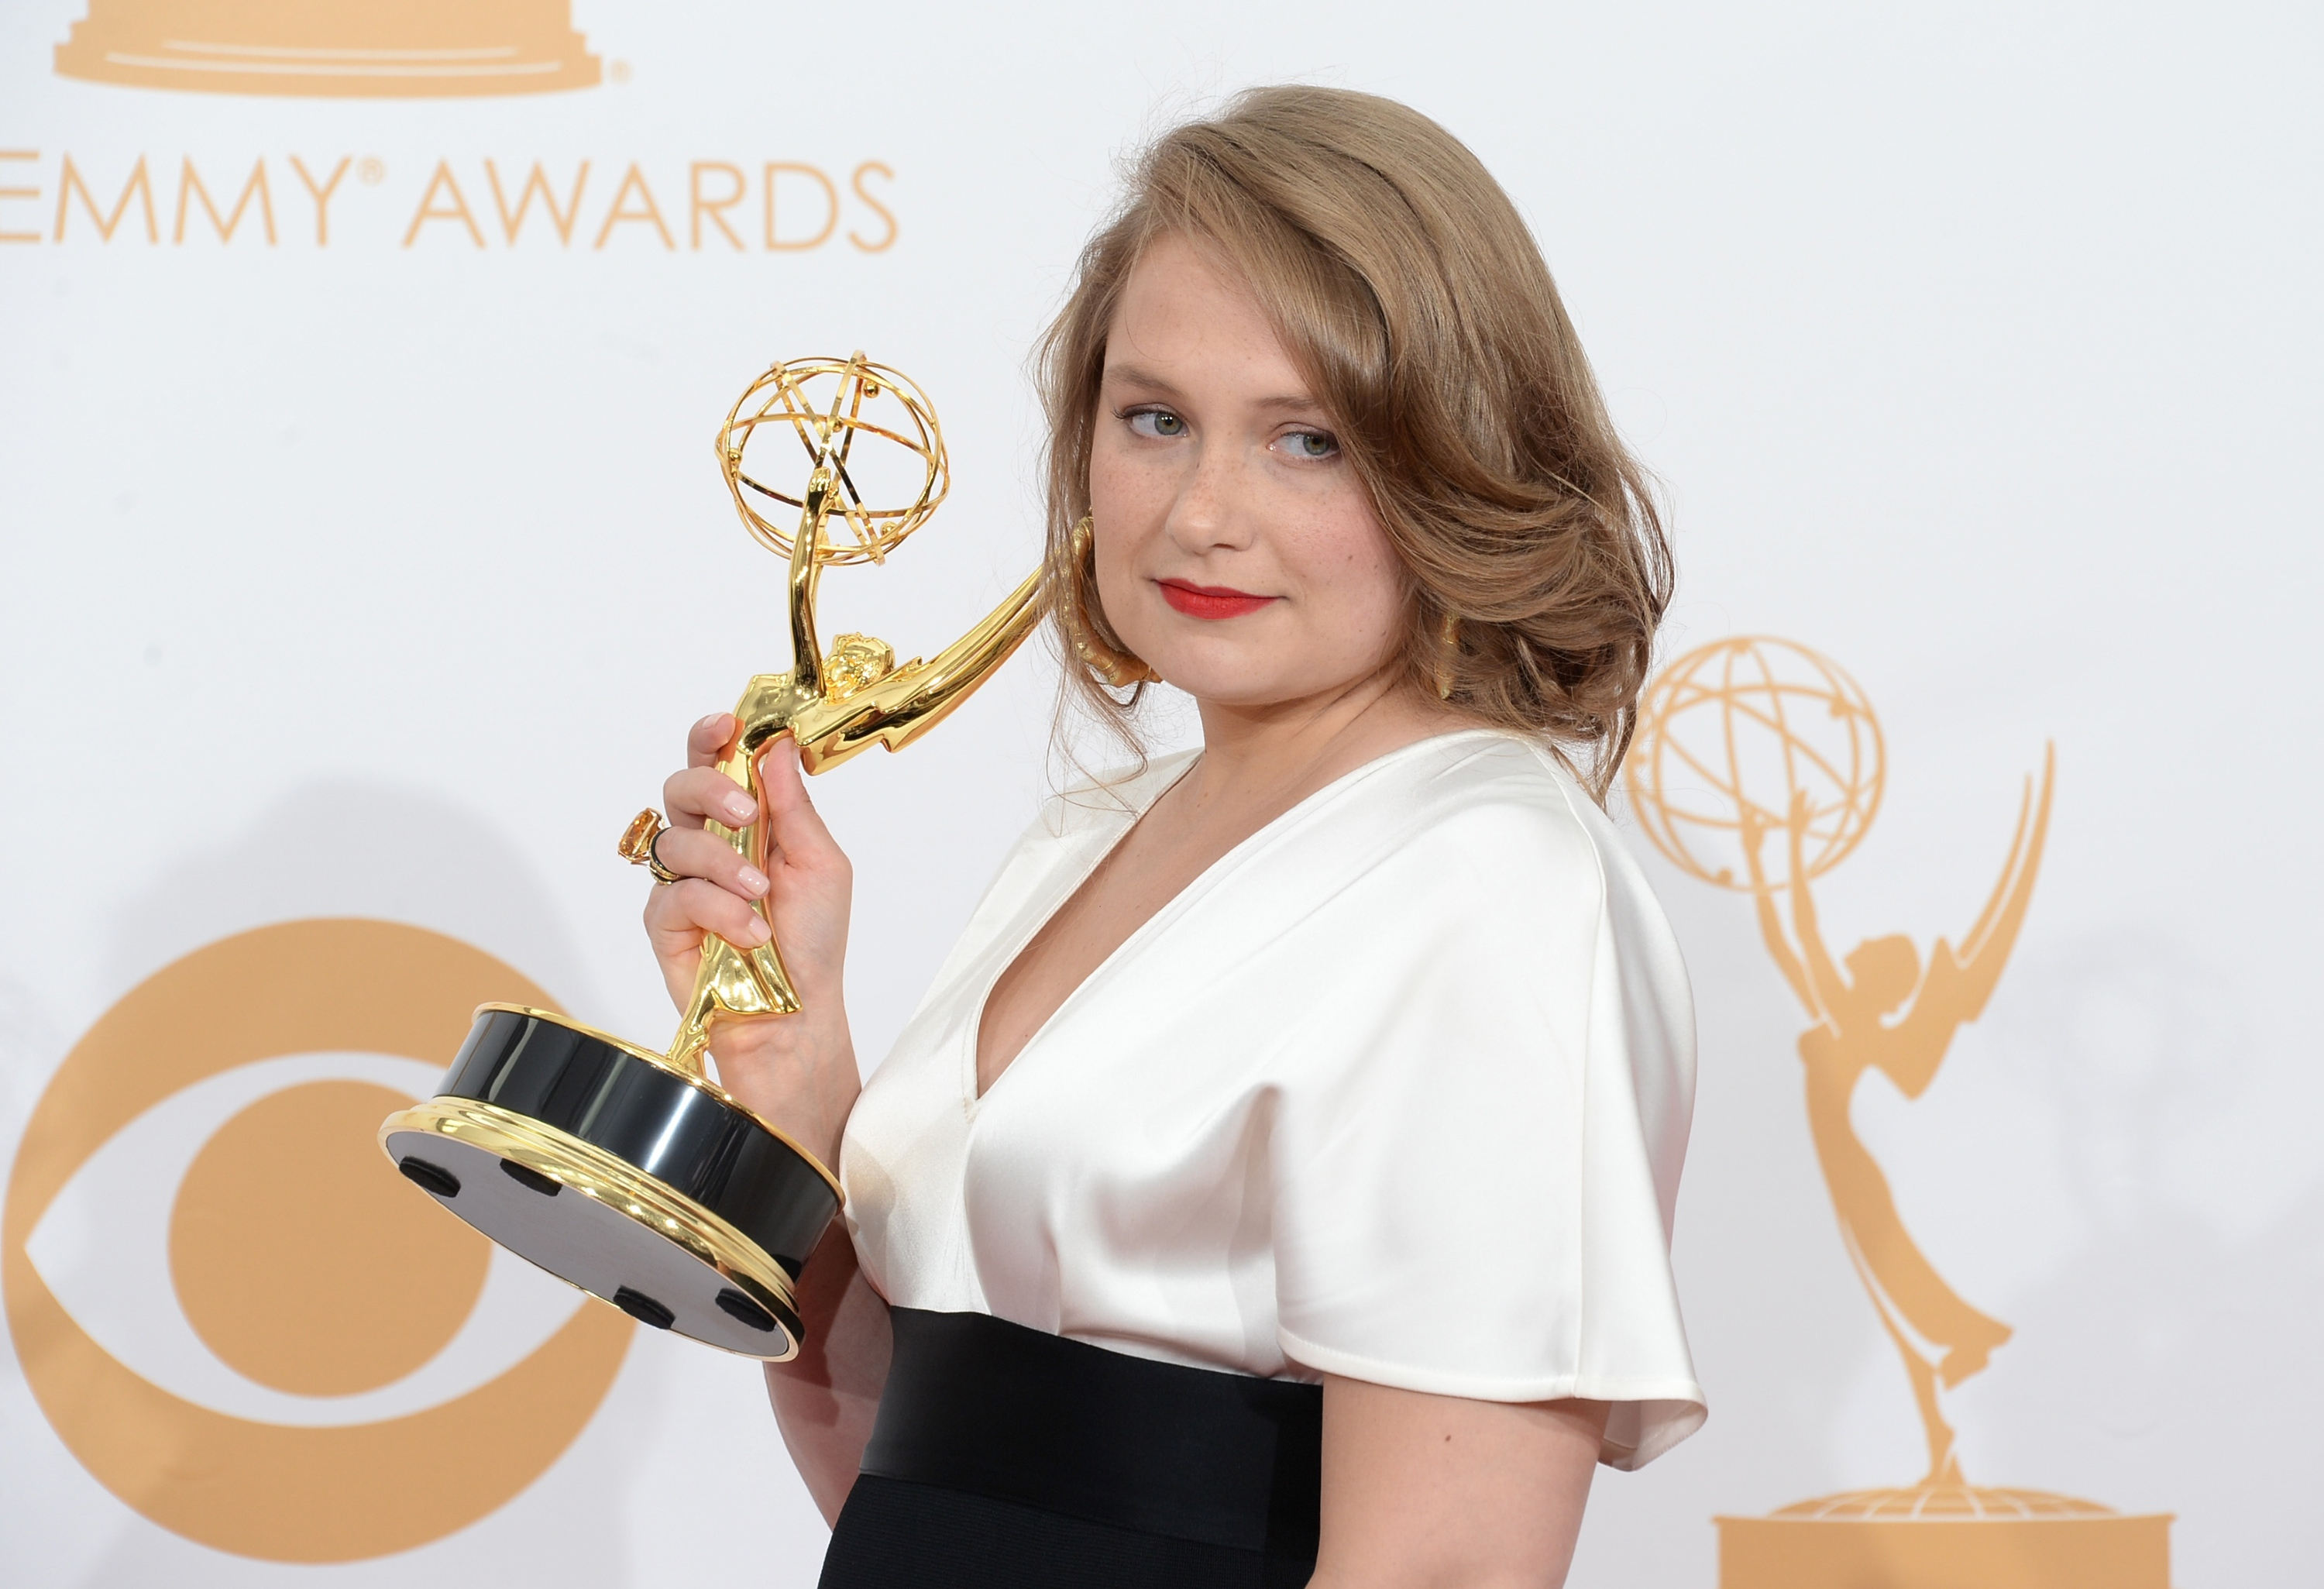 5 Things to Know About Merritt Wever, the Emmy Winner Who Gave the Best Speech Ever